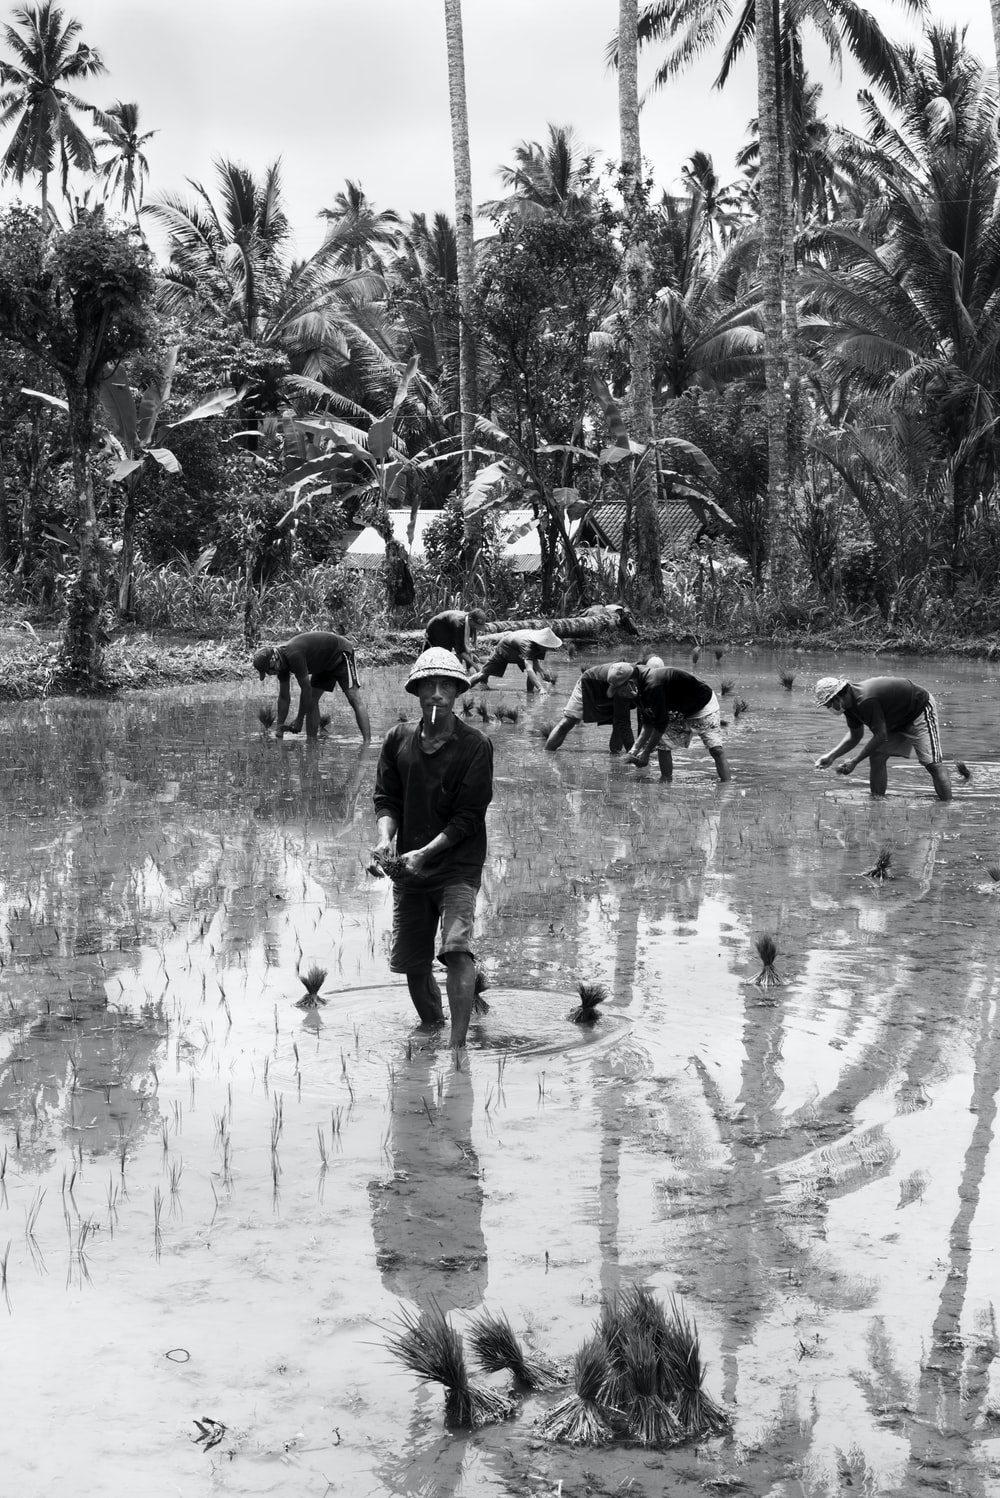 people farming in grayscale photography